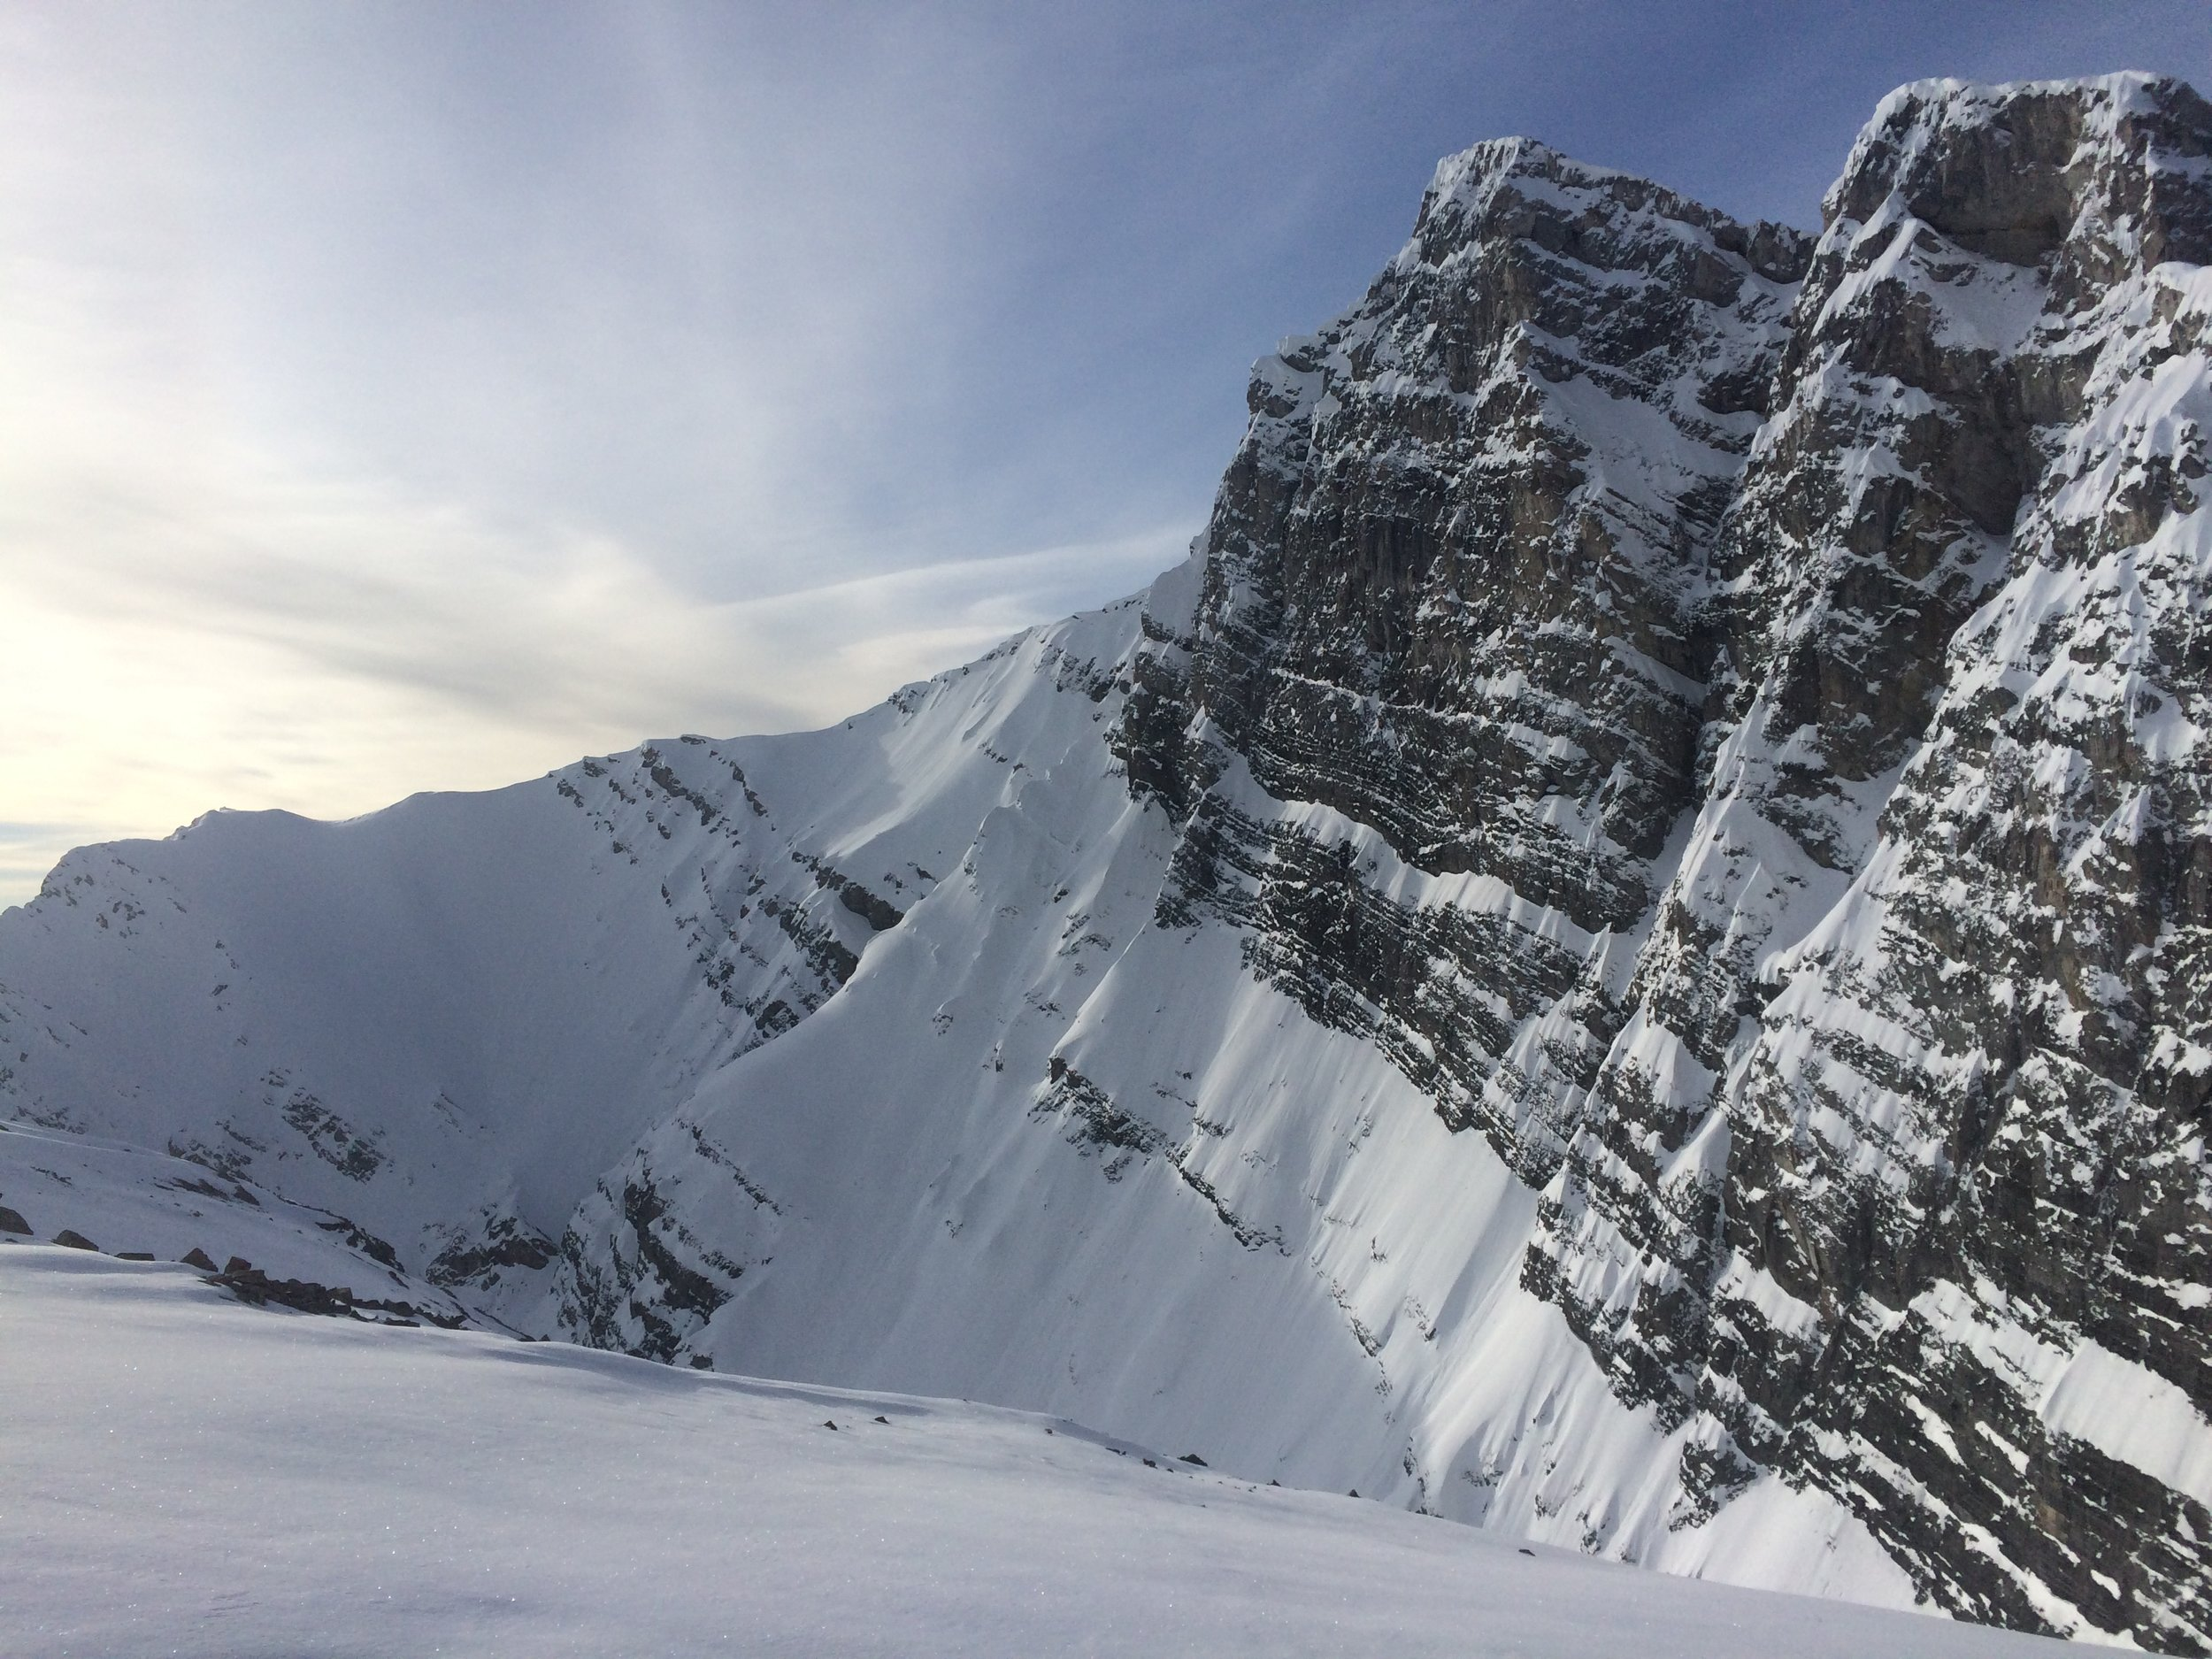 The wall of Mt. Lawrence Grassi